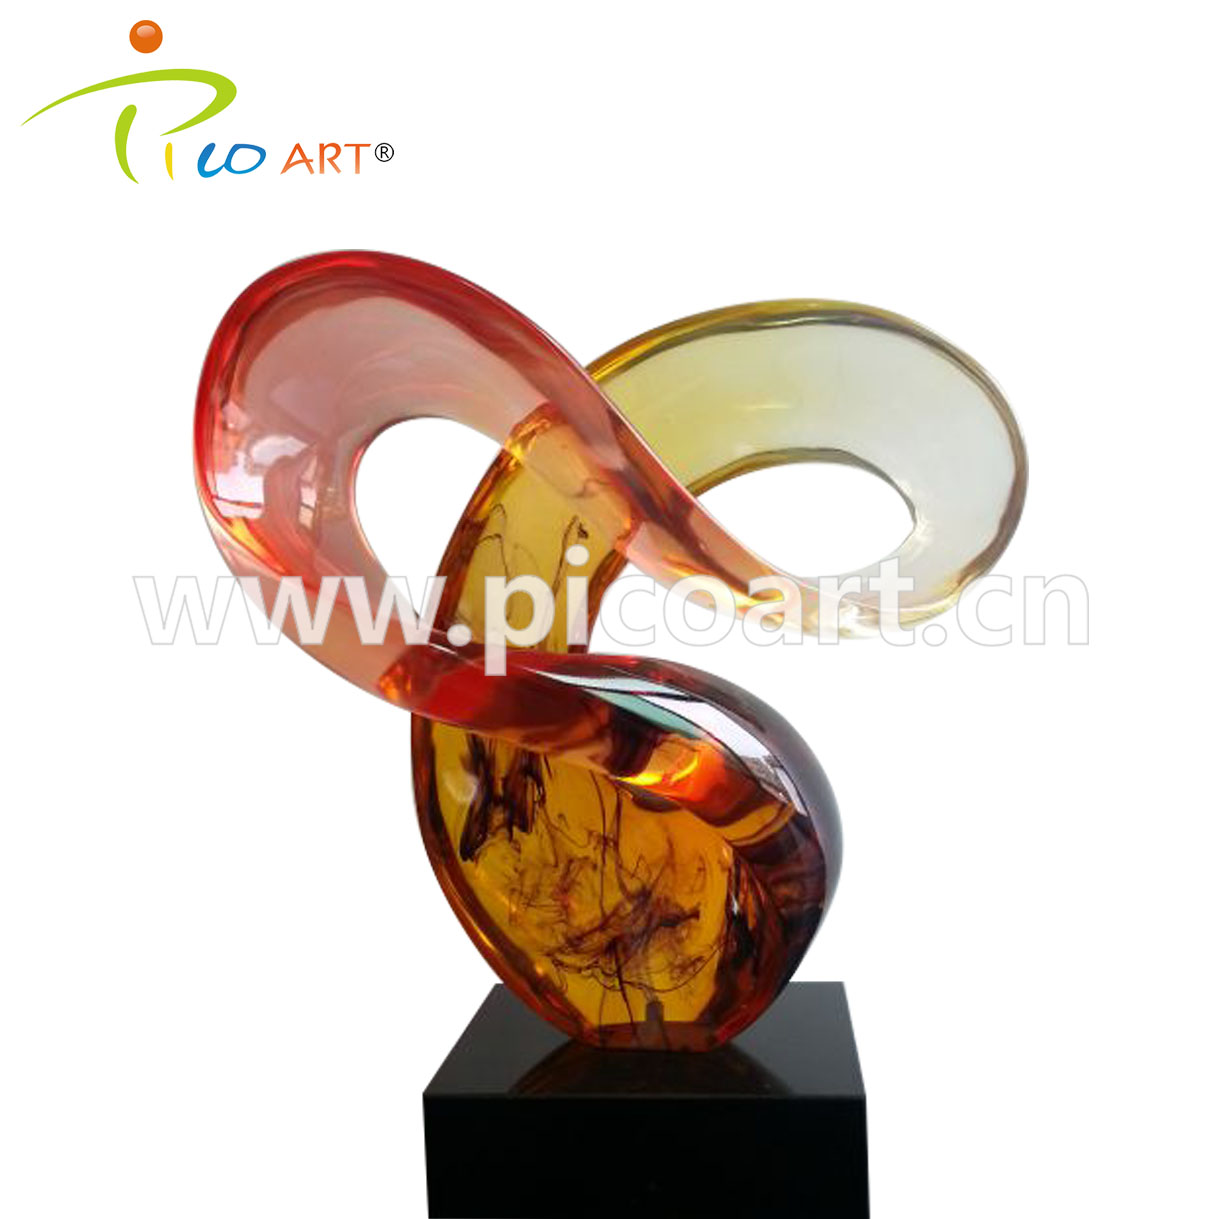 Light Red Clear Epoxy Casting Resin Contemporary Art Sculpture